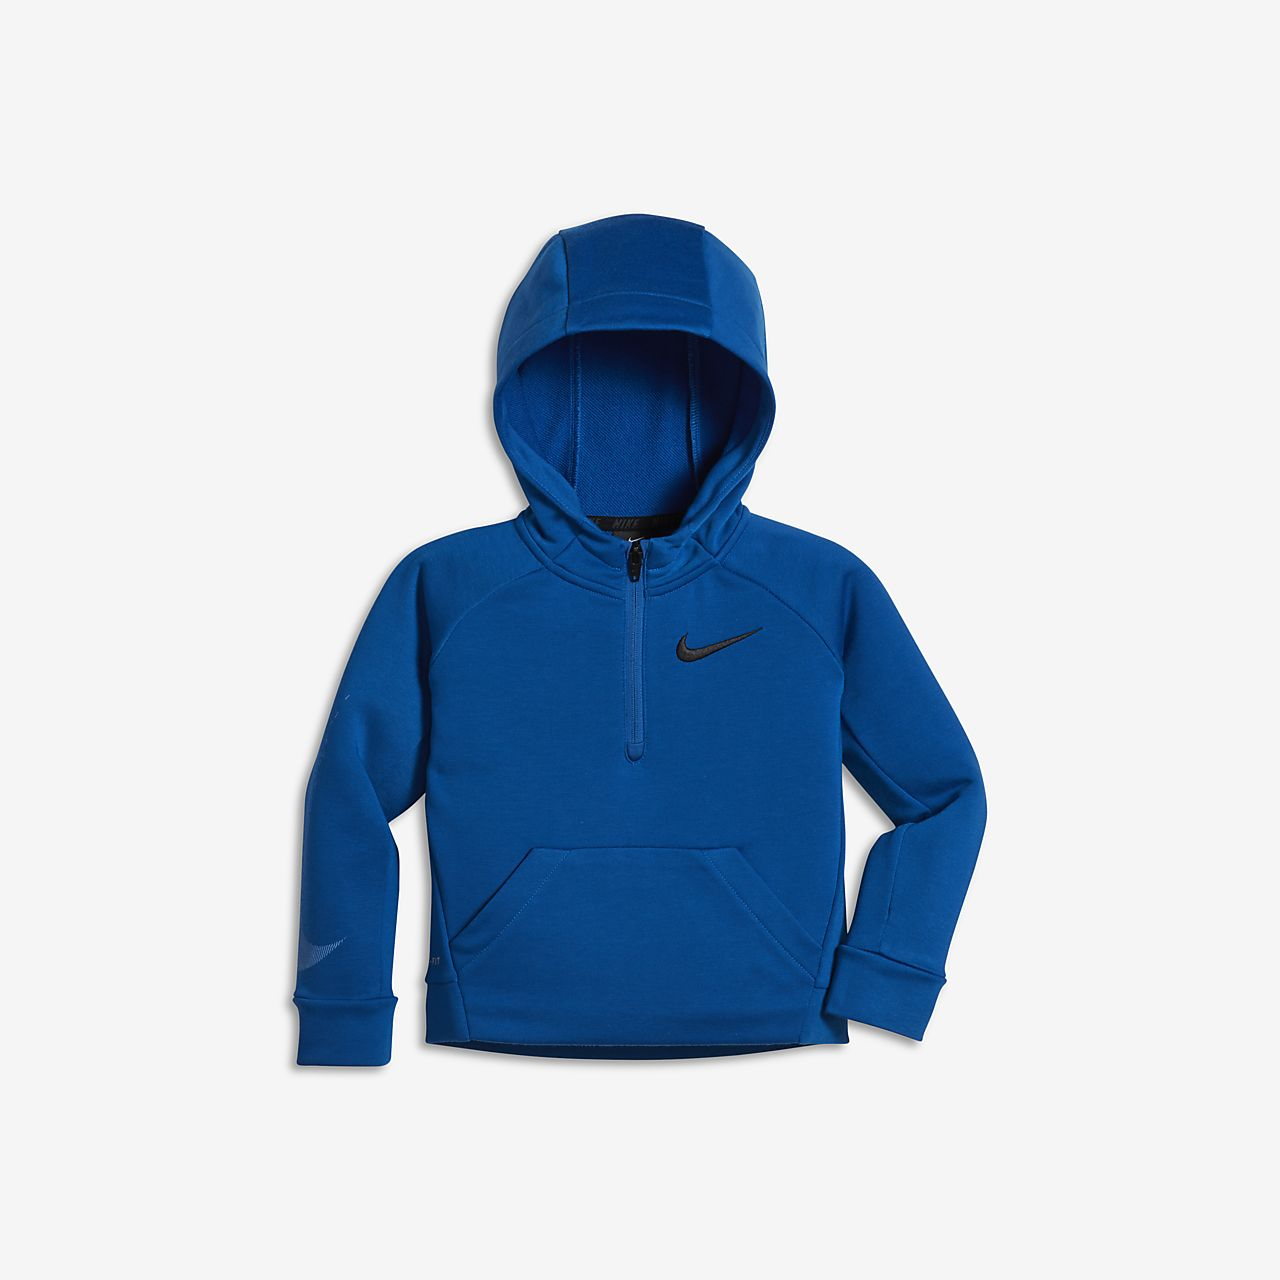 Nike Dry Infant/Toddler Boys' Fleece Pullover. Nike.com